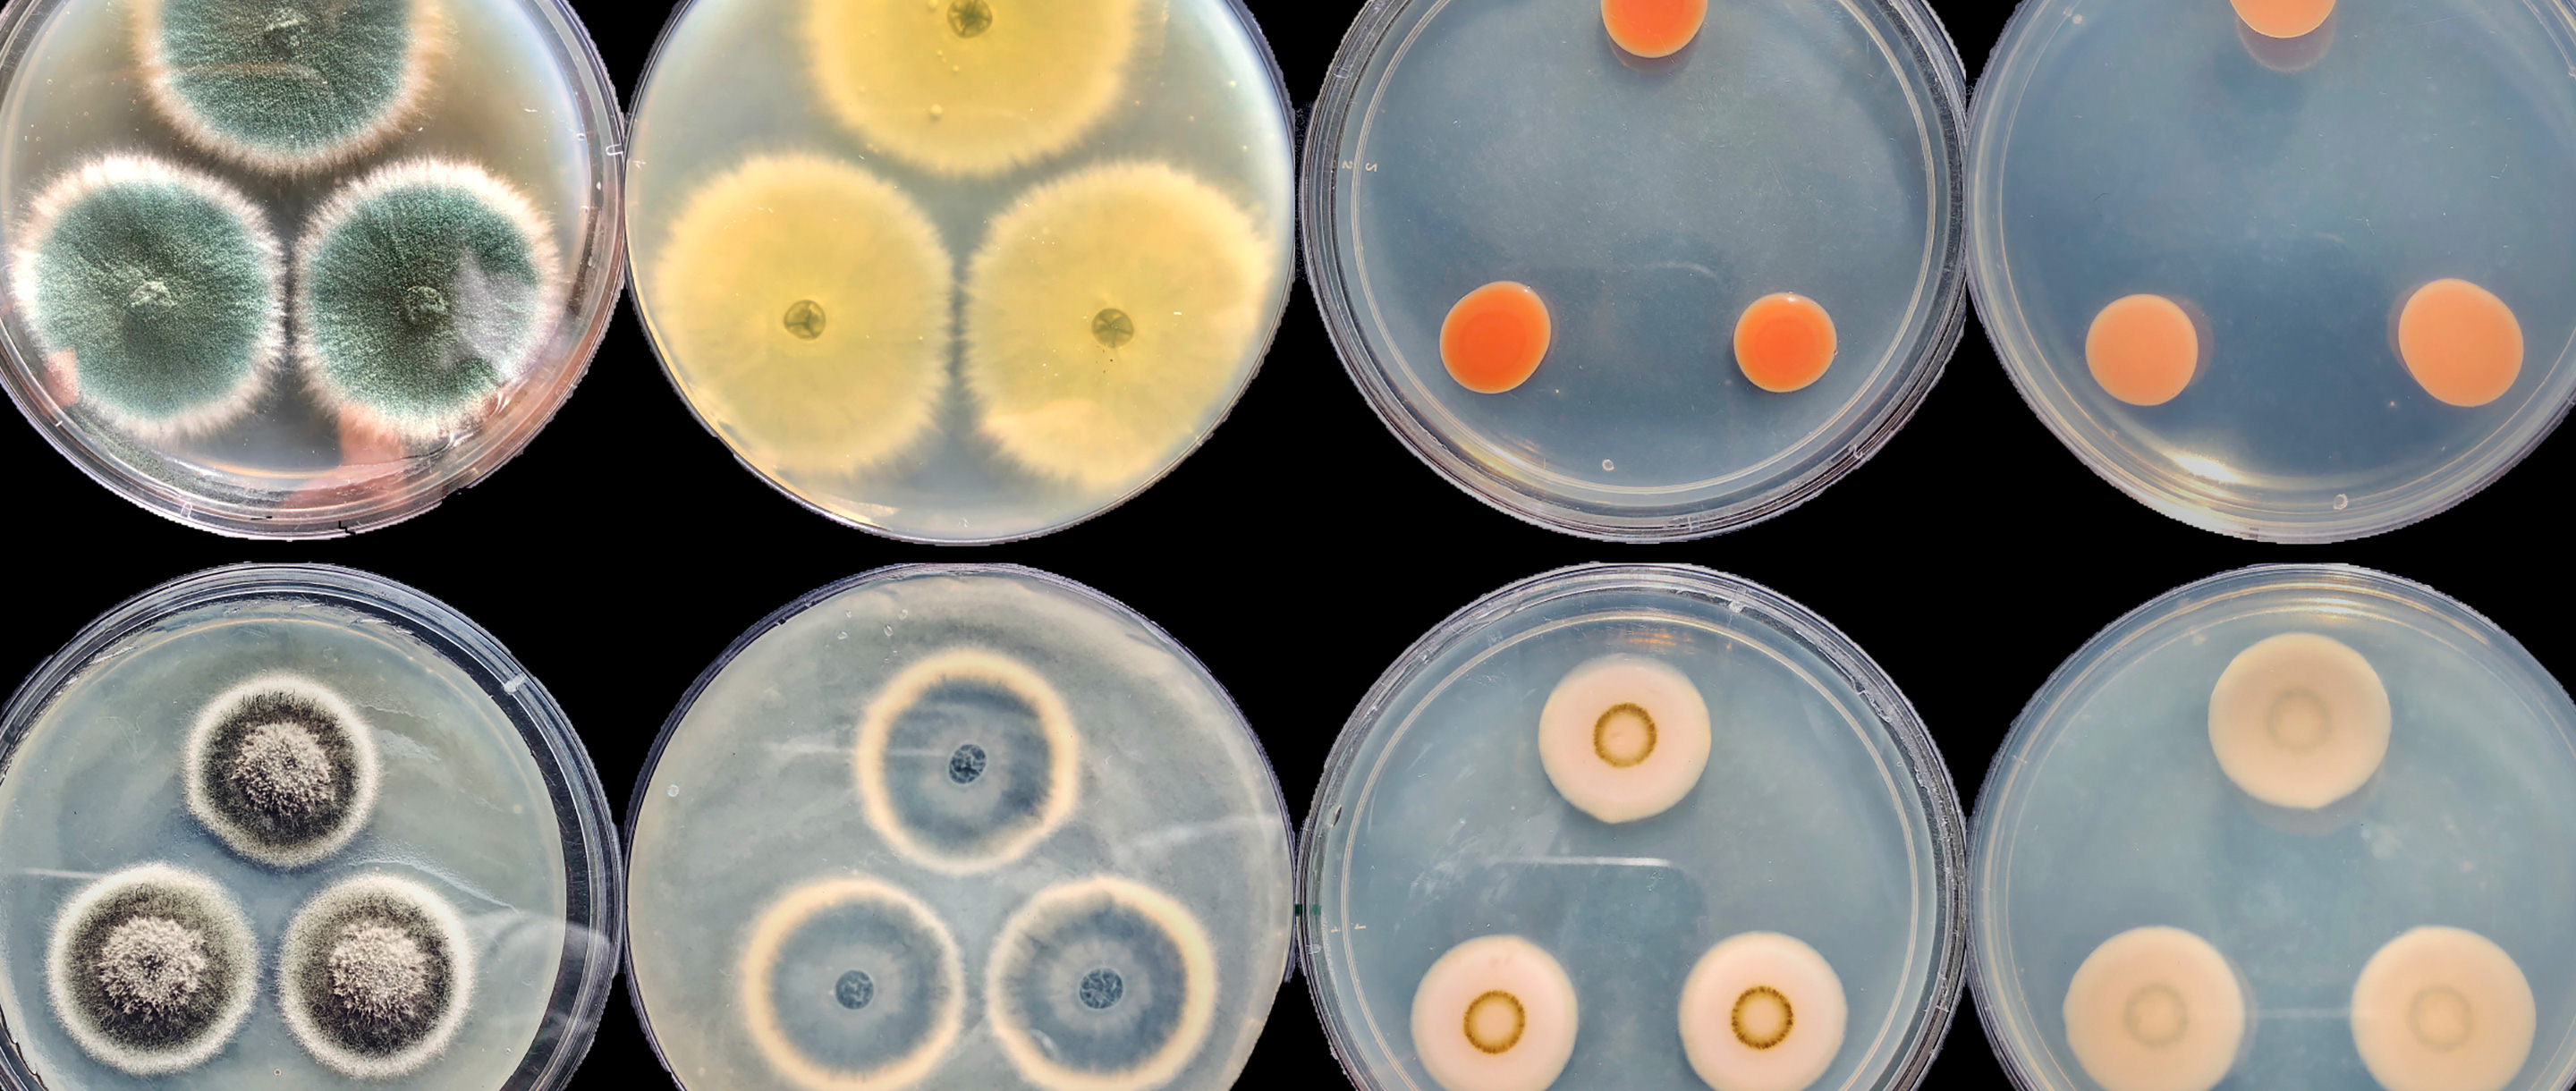 Photo of 12 petri dishes holding brightly colored fungi.